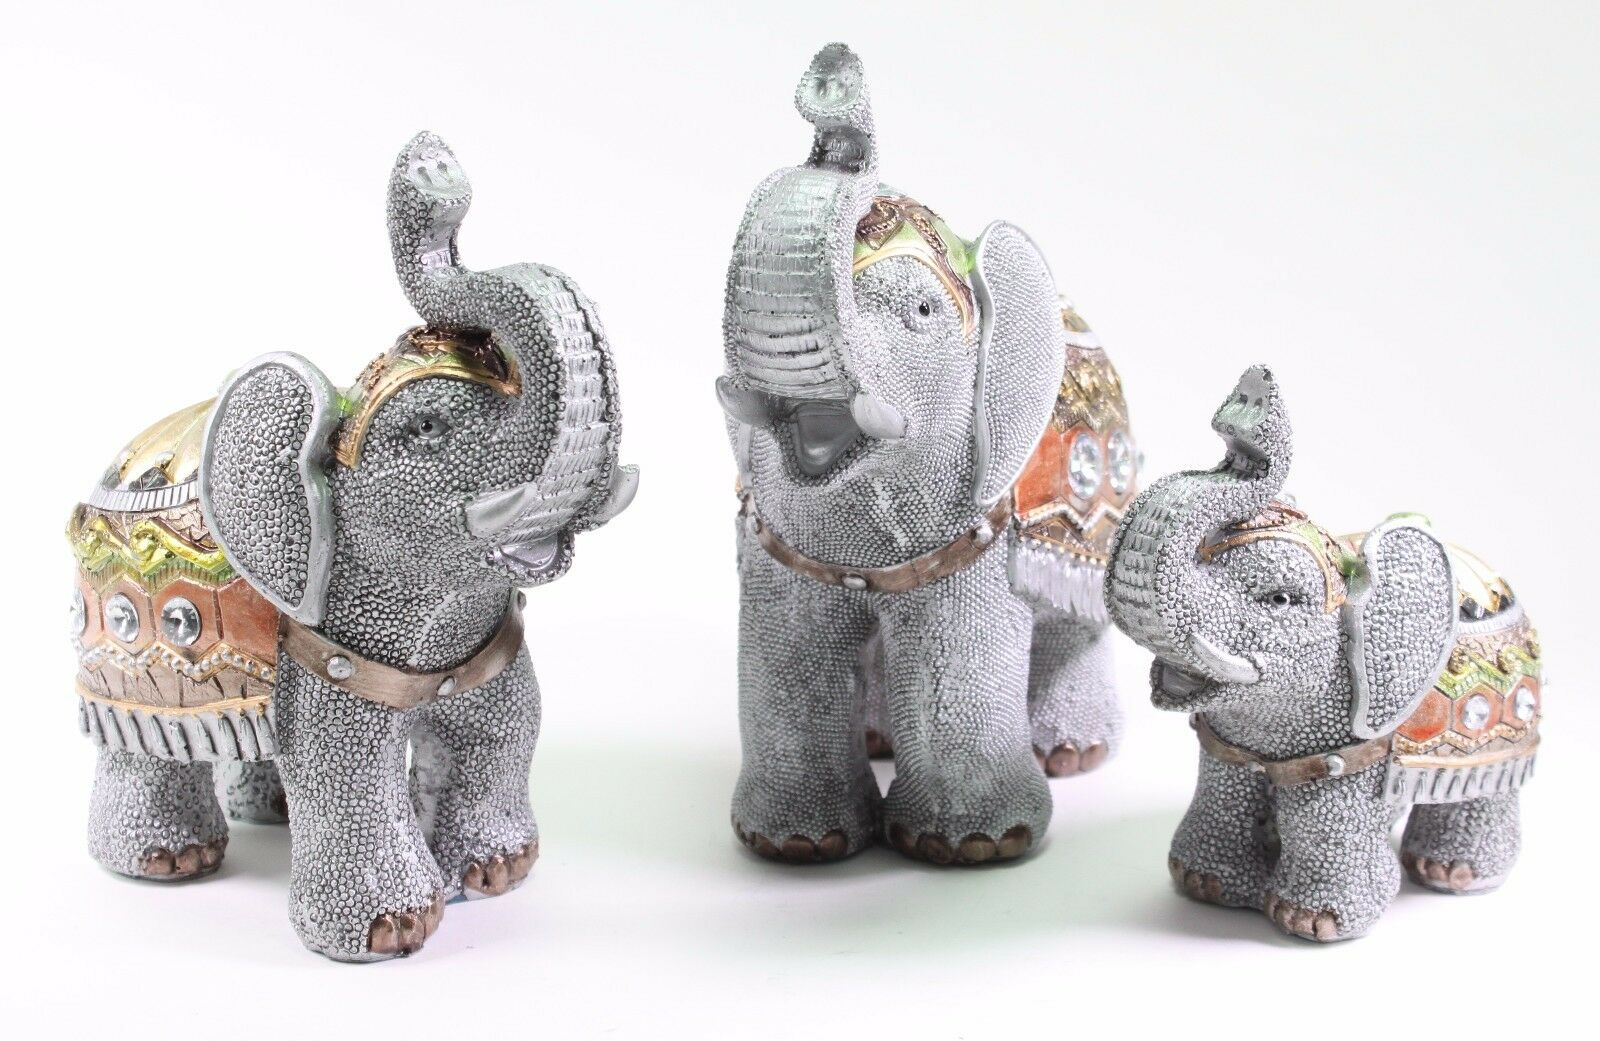 Set of 3 feng shui gray elephants trunk statue lucky figurine gift home decor ebay Elephant home decor items